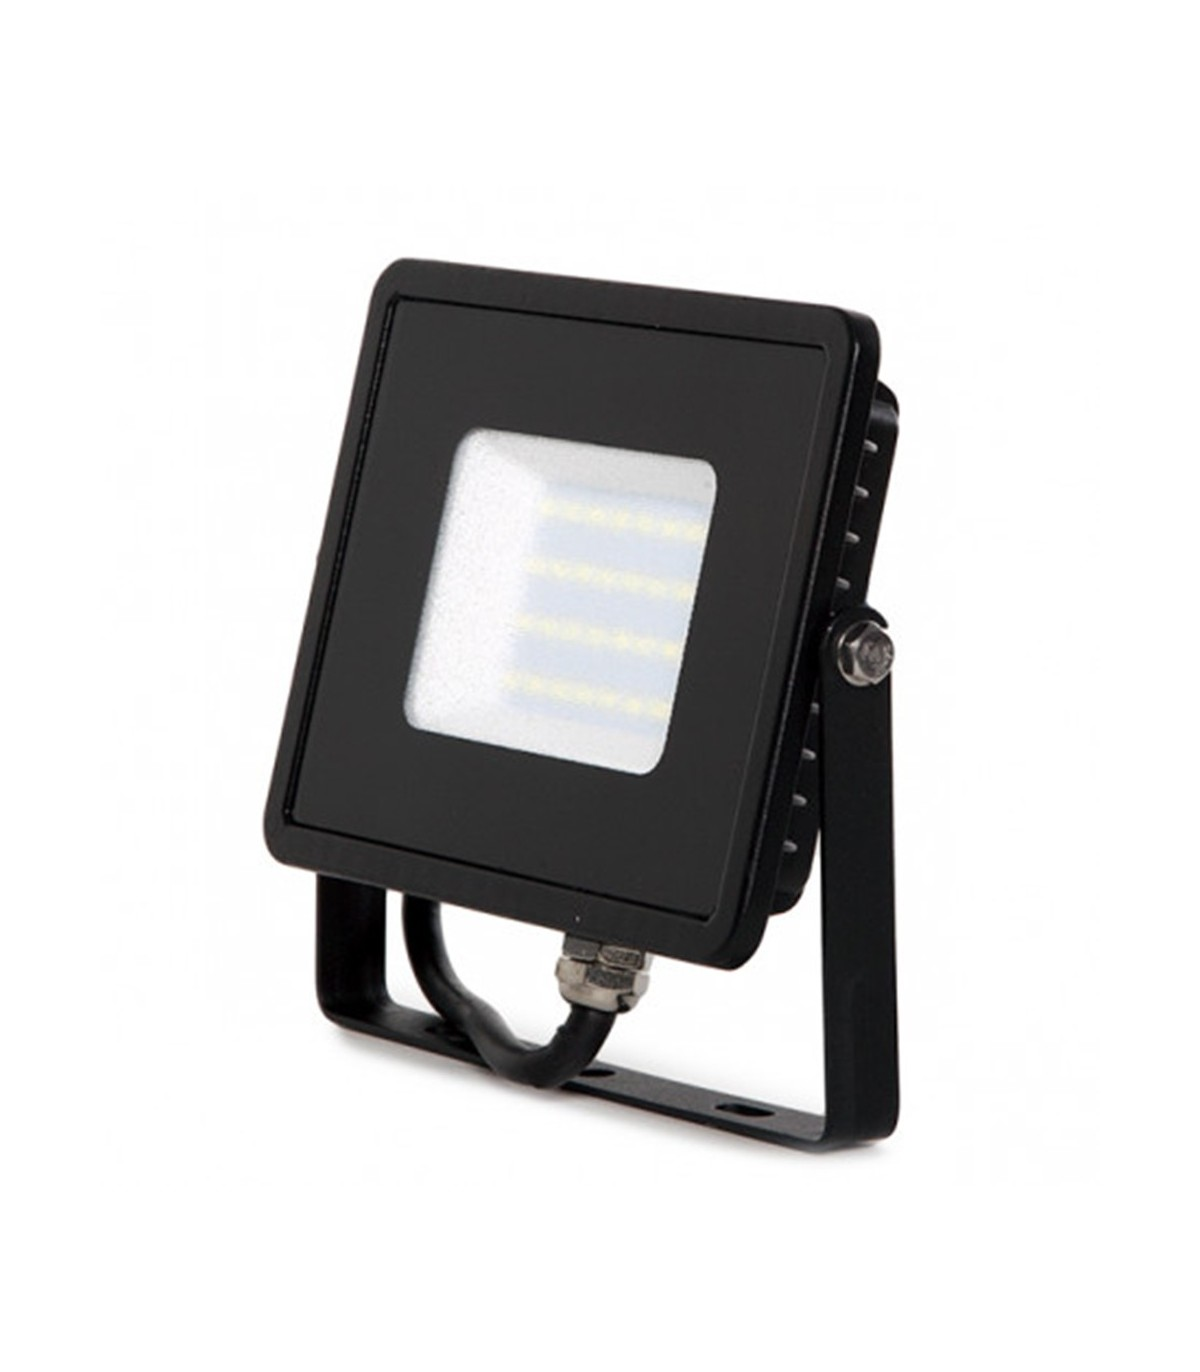 Foco Proyector Led 50w Superslim Dimmable Negro